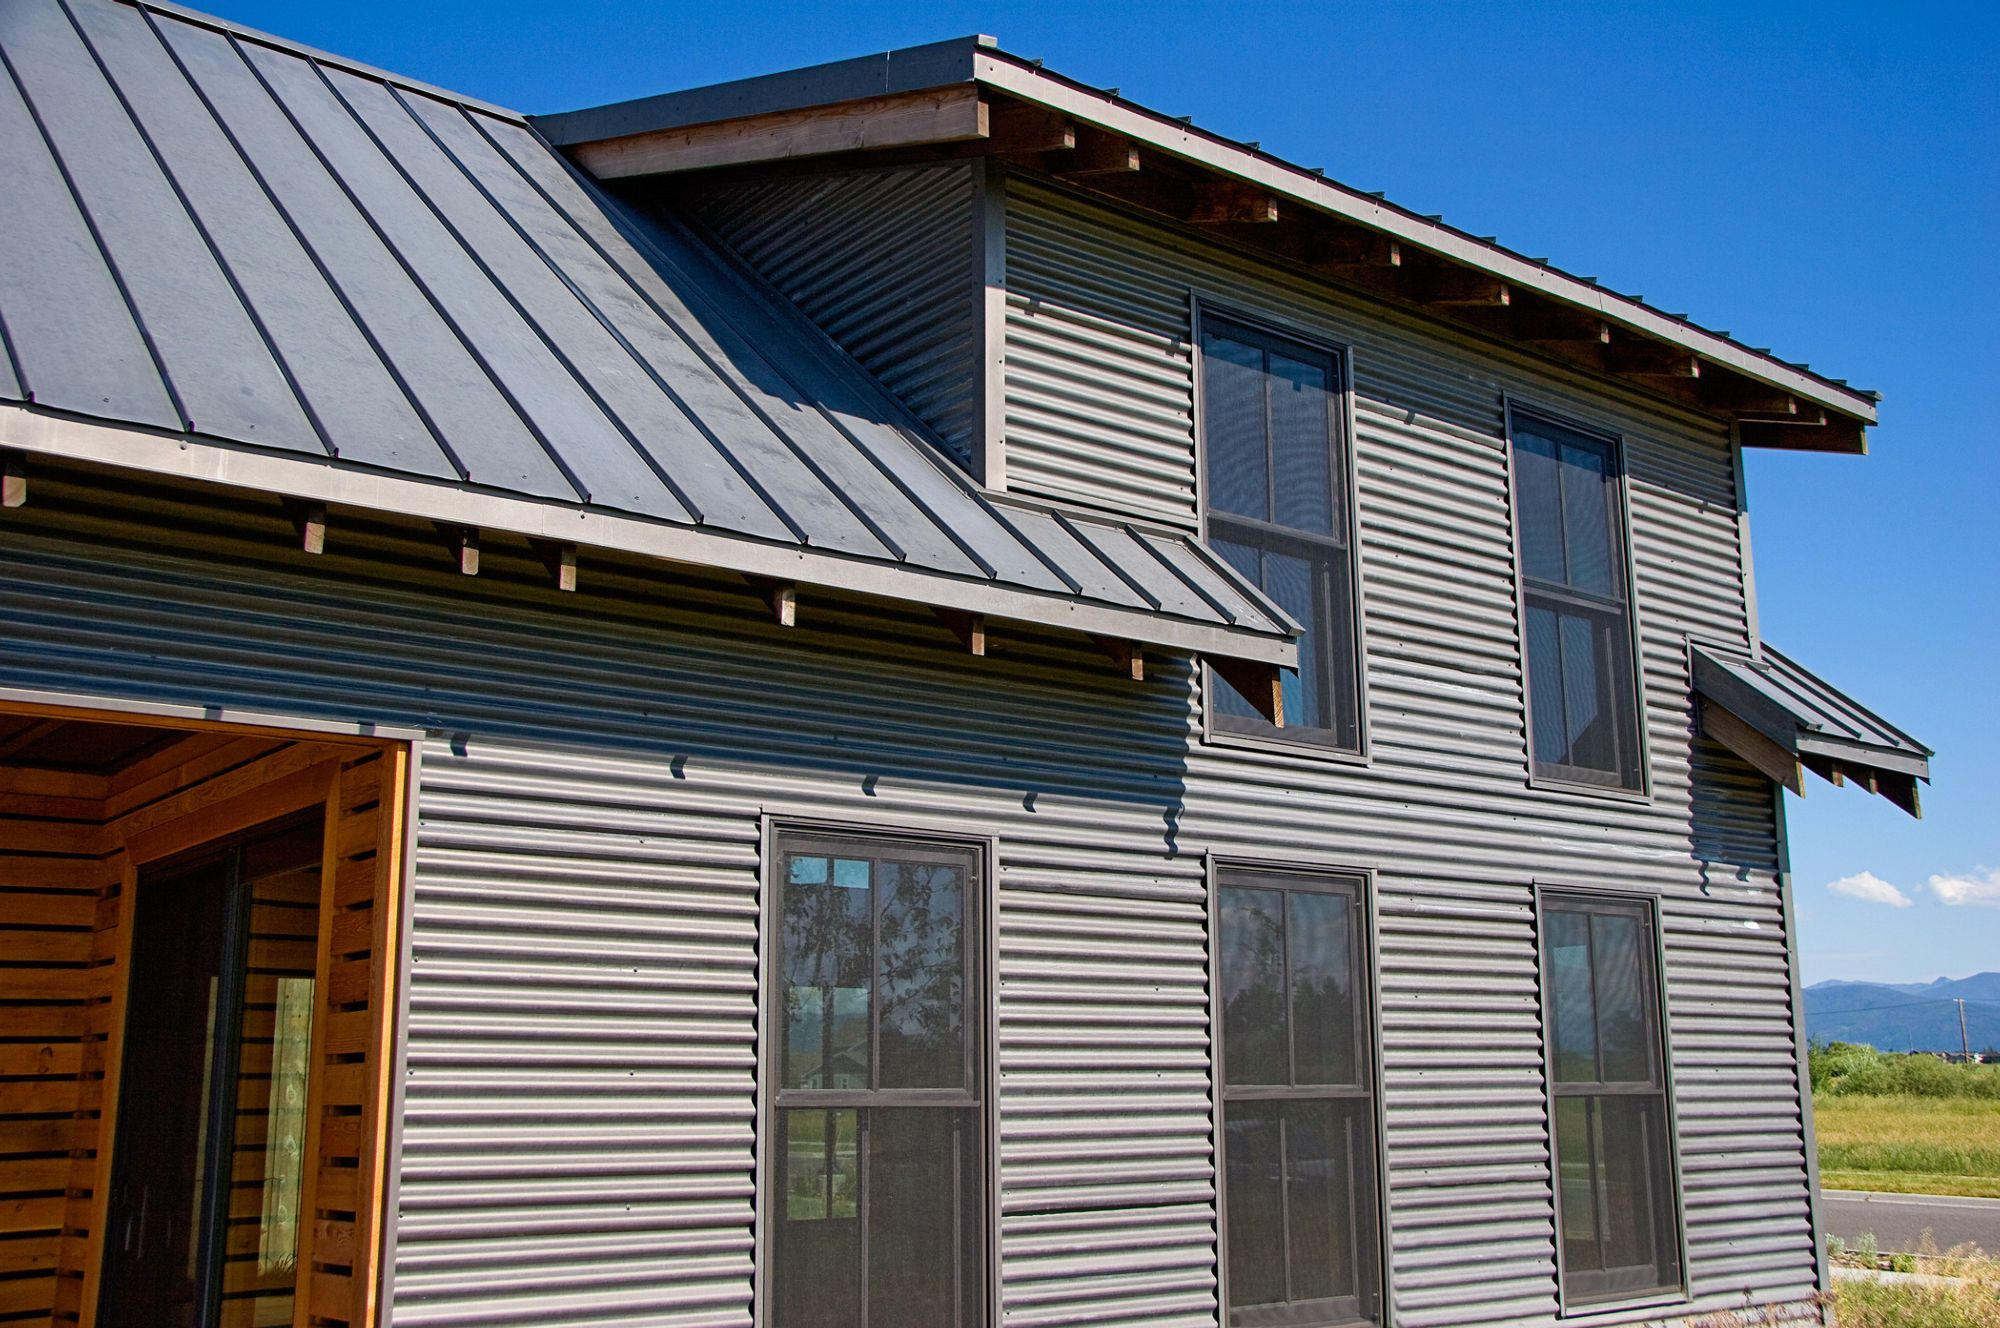 steel siding for houses products roofing siding rustic